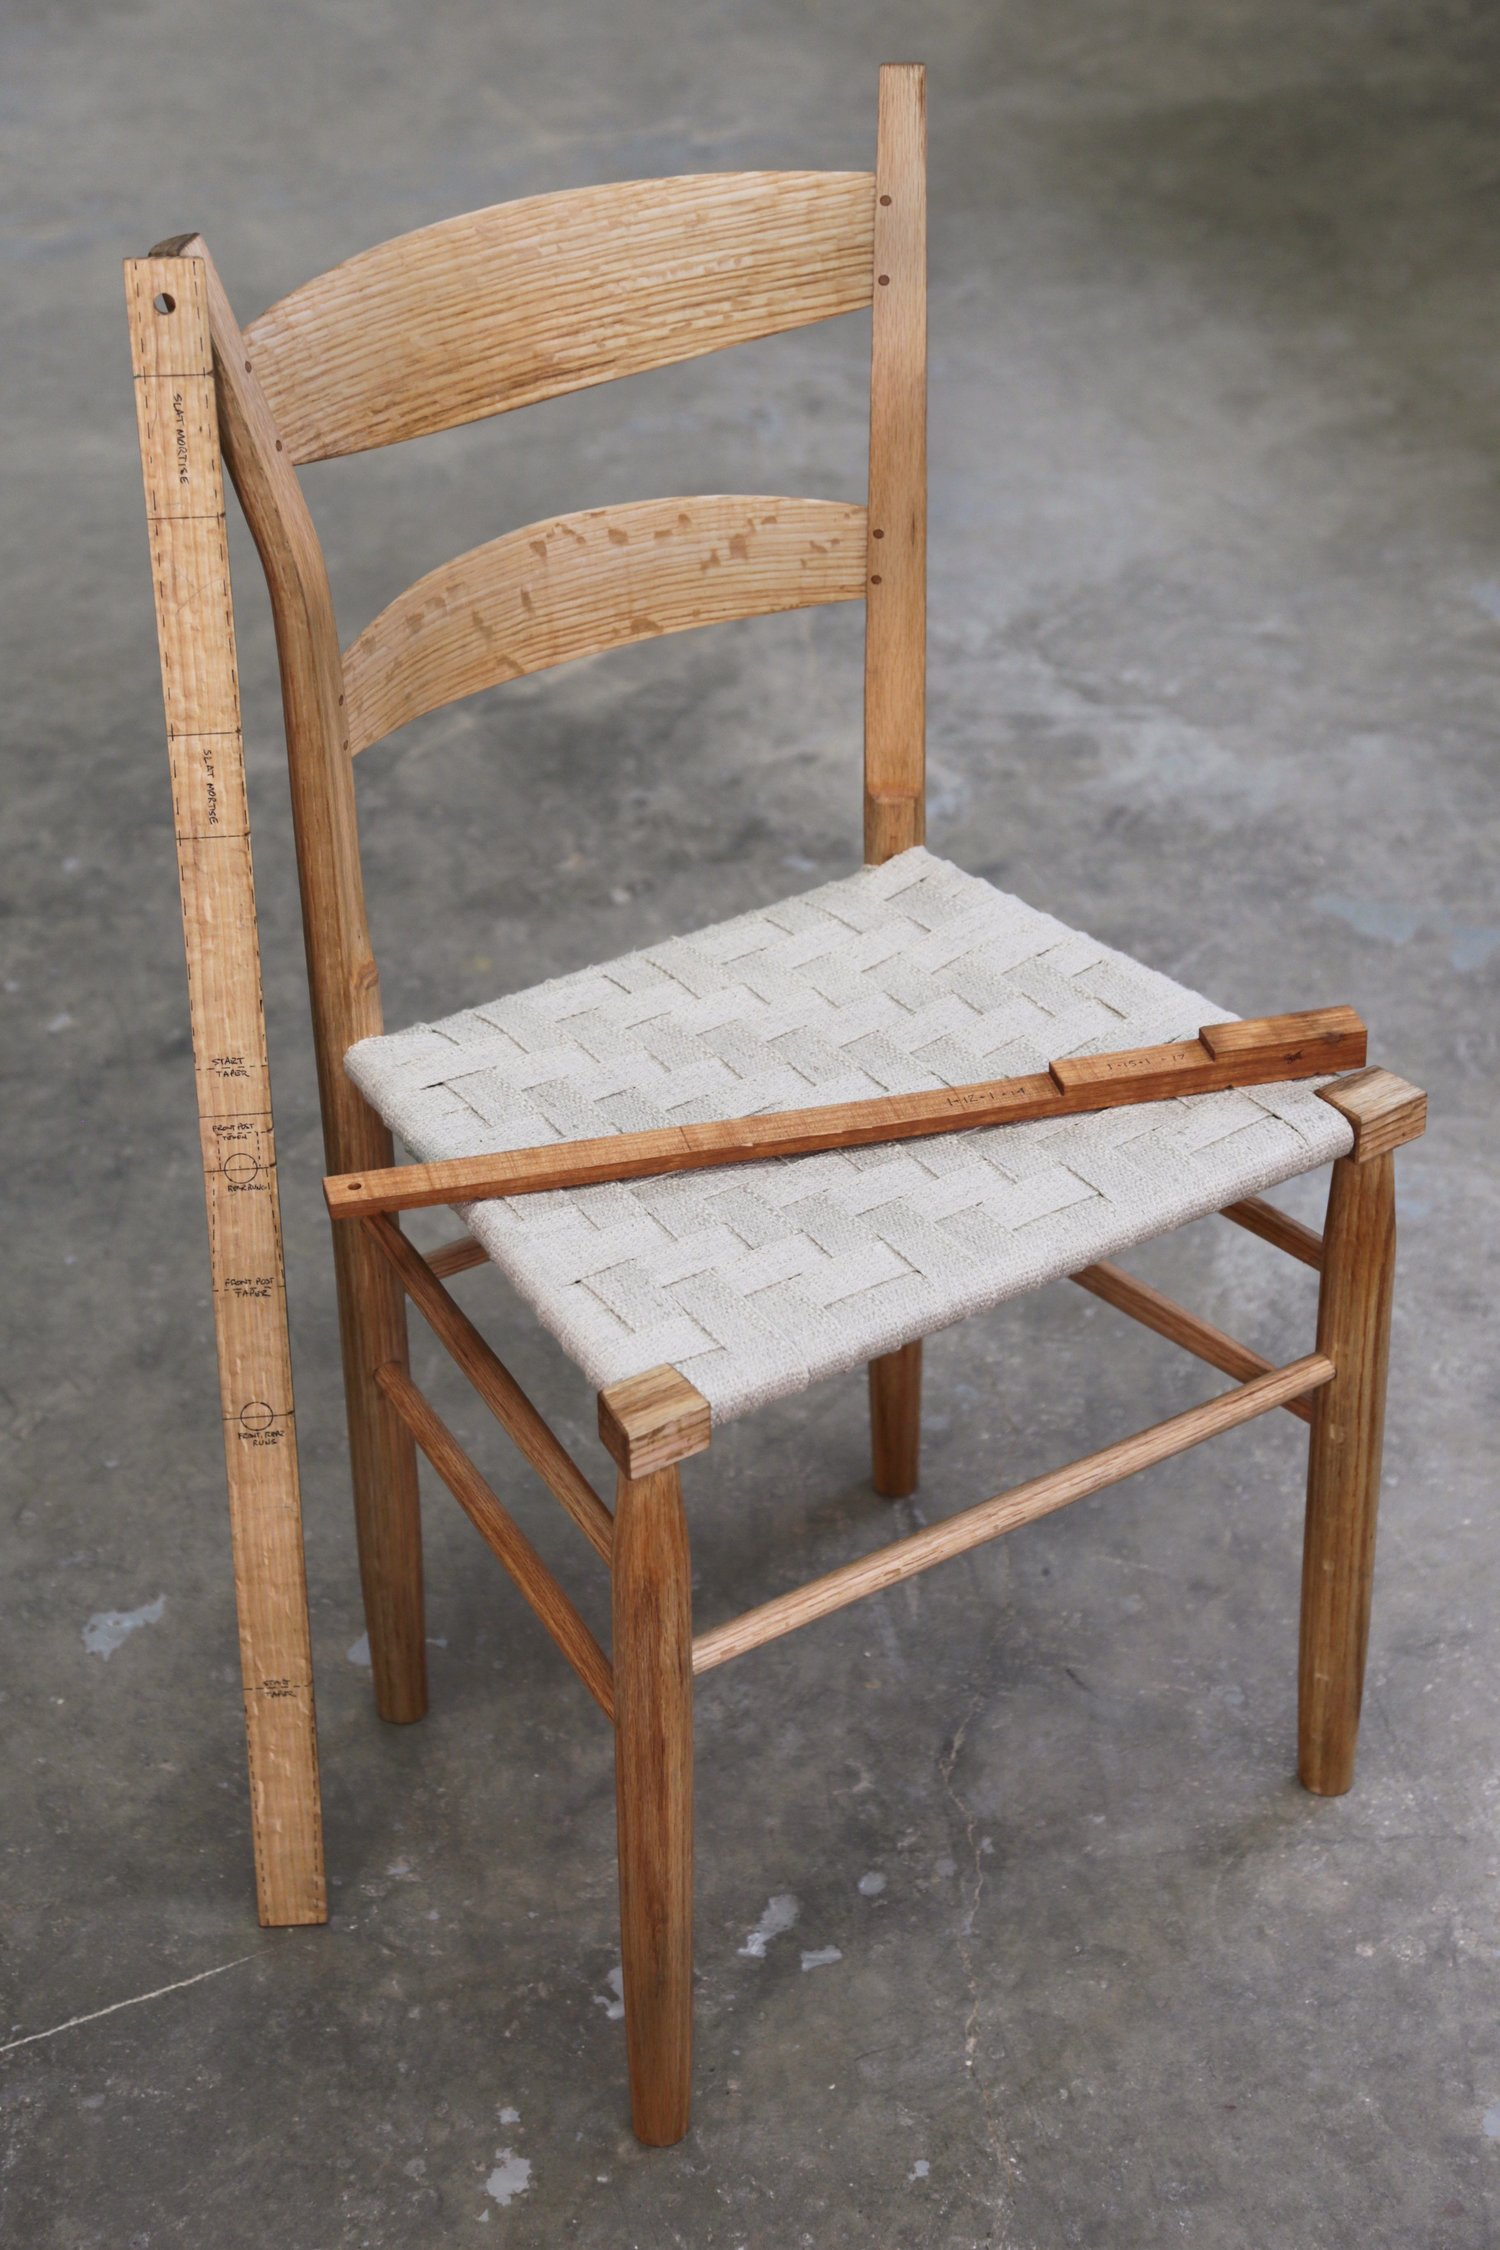 The chair is built in the greenwood ladder back style with rived parts shaped